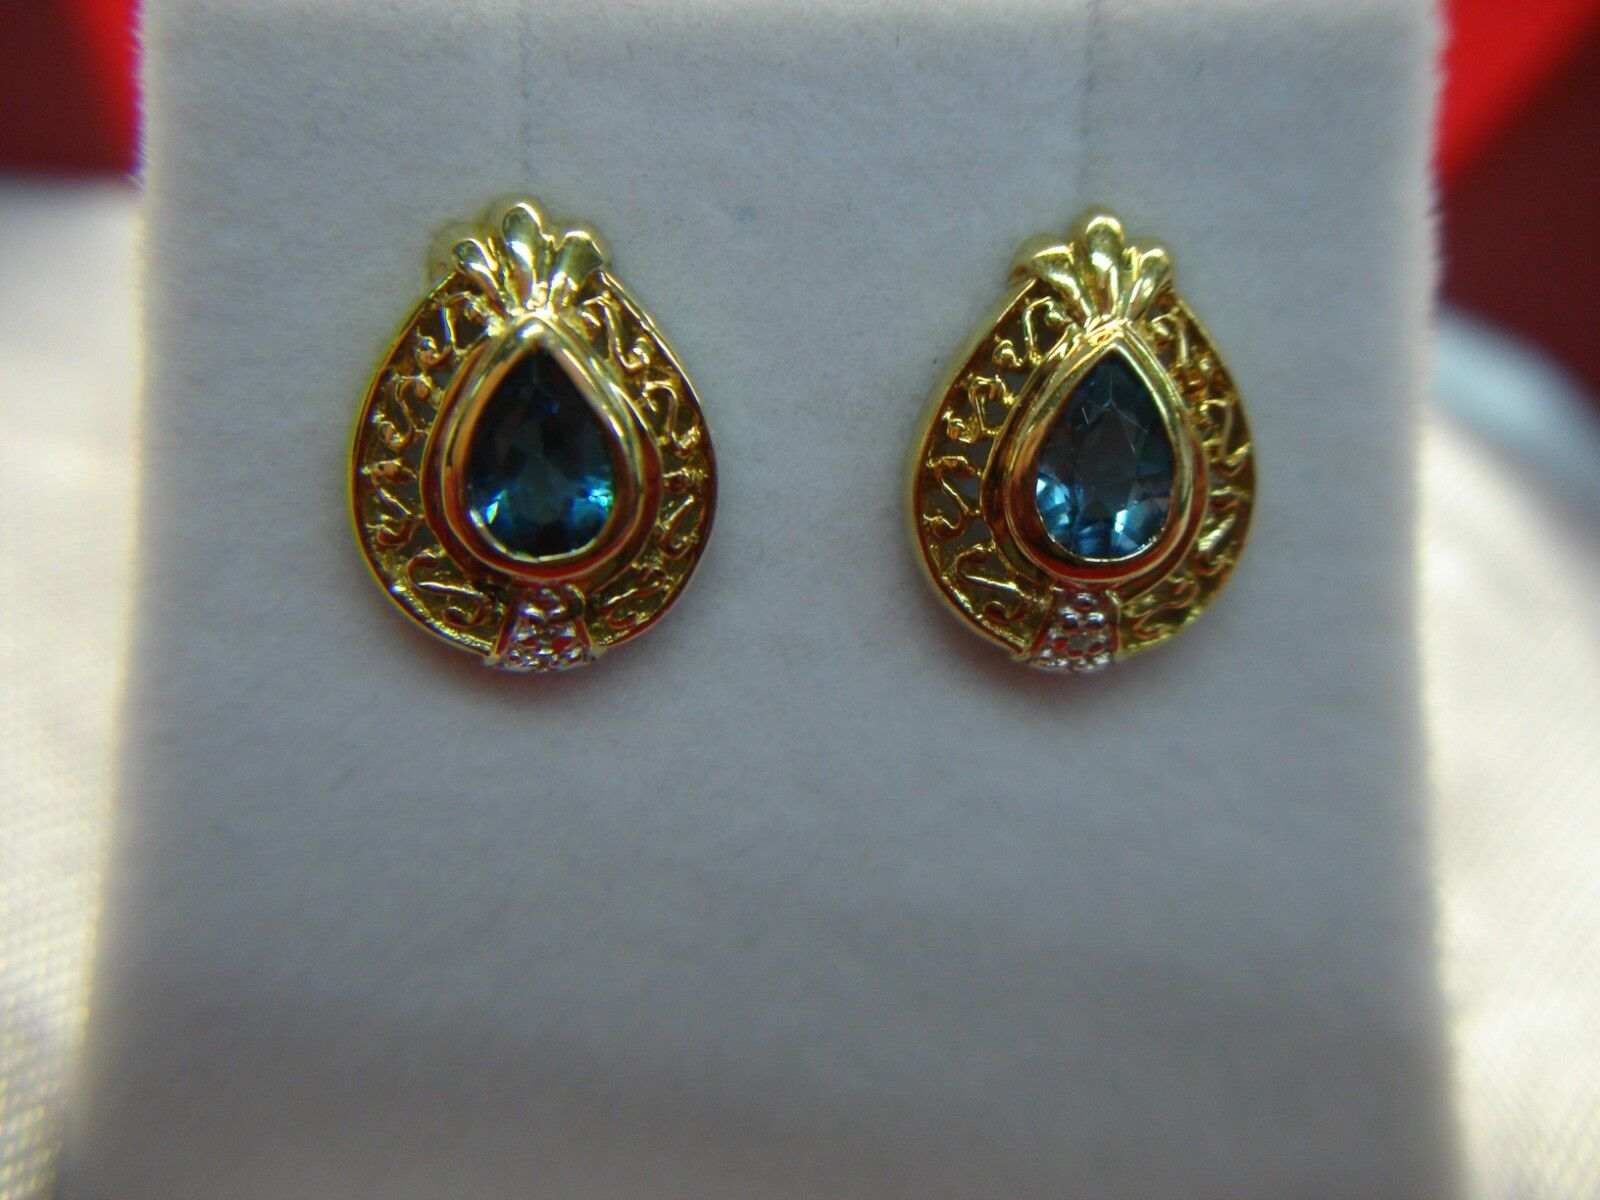 14K YELLOW gold STUDS WITH PEAR SHAPED blueE TOPAZ & ACCENT DIAMONDS - CUTE